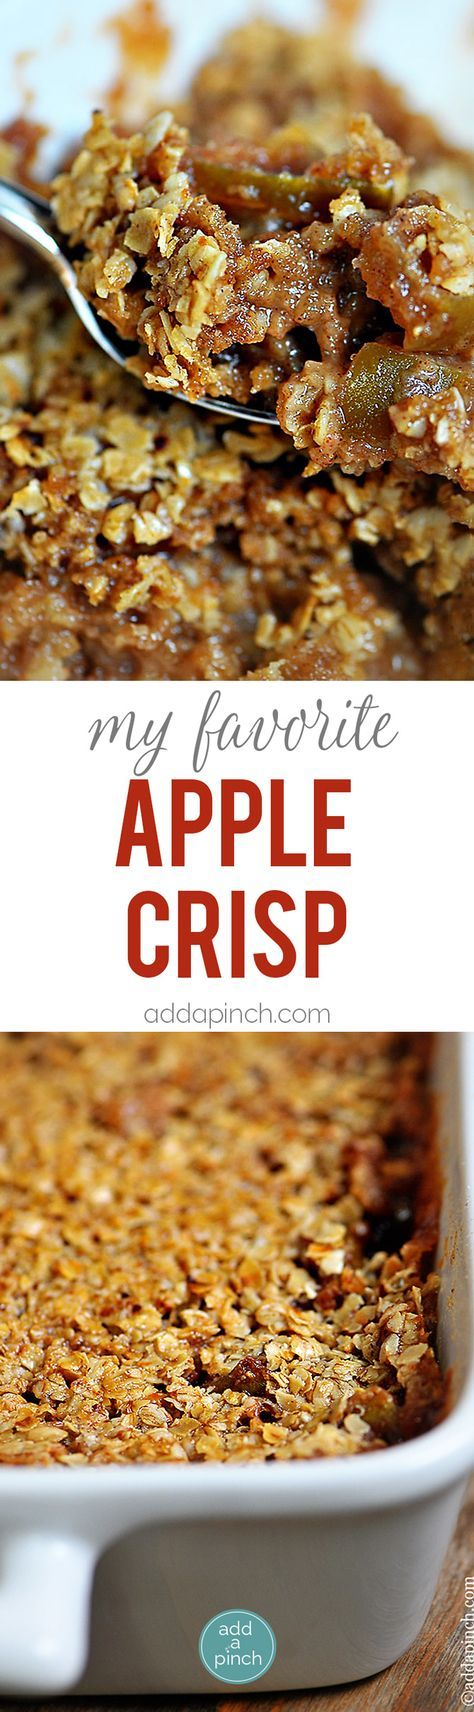 Apple Crisp Recipe - Apple Crisp is the perfect dessert for the apple lover. This apple crisp recipe is made with flavorful apples, cinnamon, and a perfectly crisp topping. // http://addapinch.com